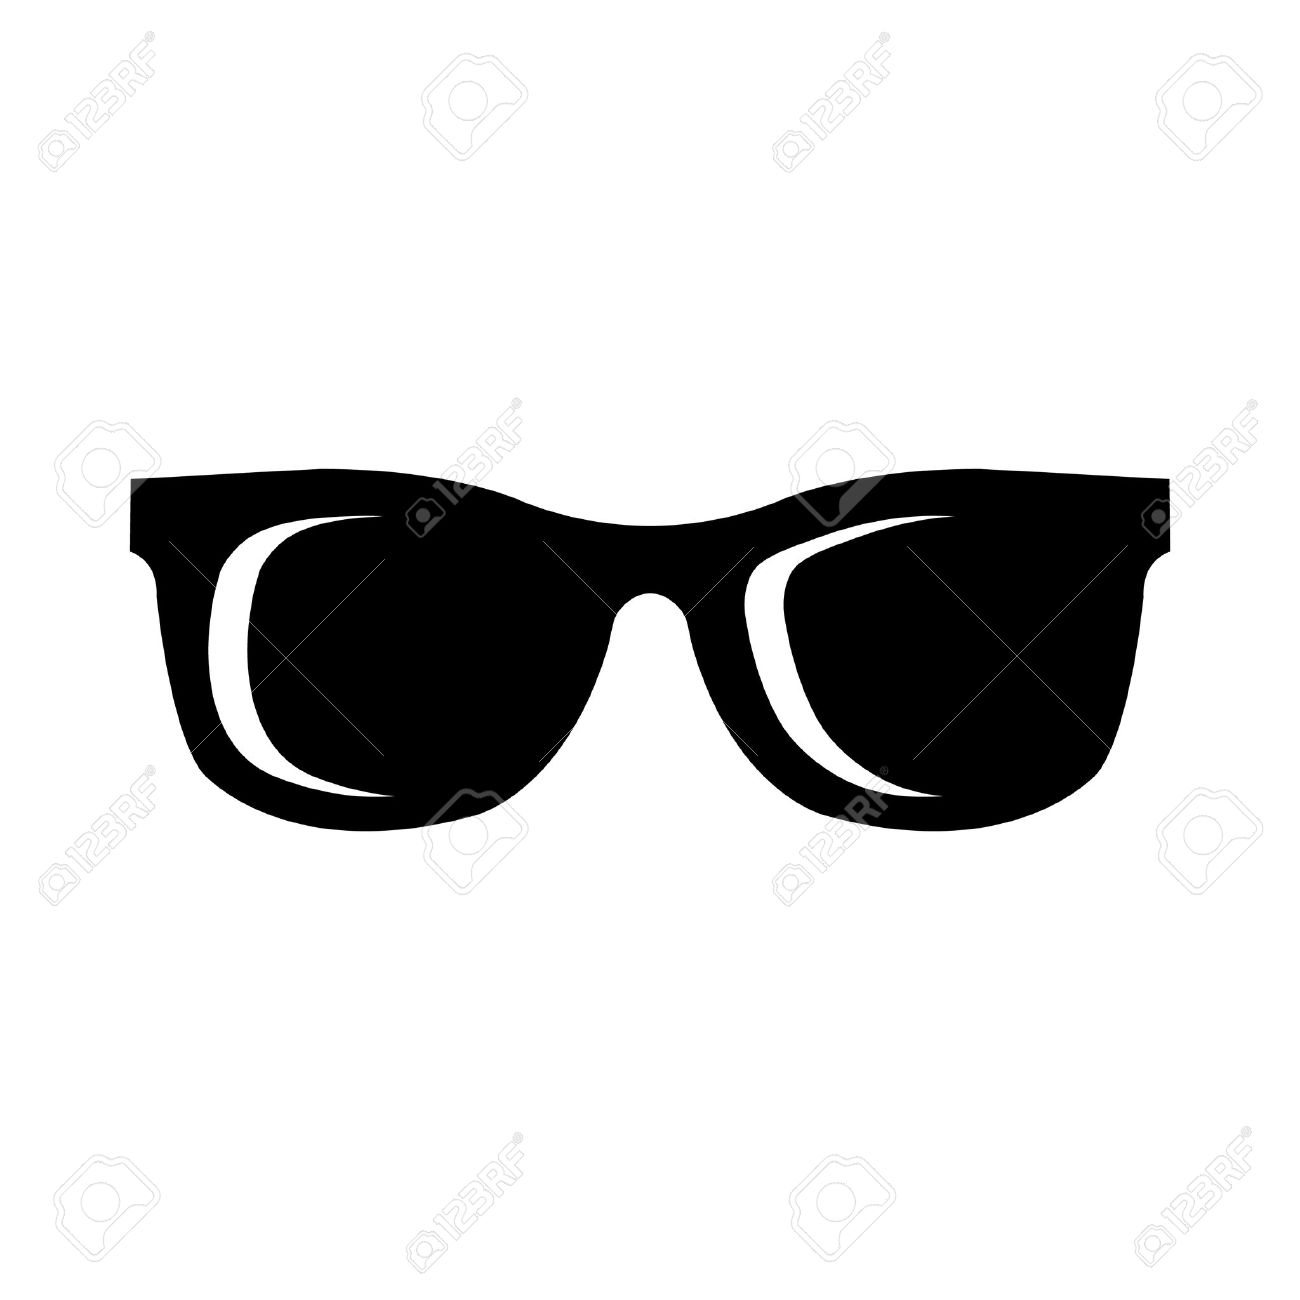 sunglasses vector icon royalty free cliparts vectors and stock rh 123rf com sun with sunglasses free vector sunglasses free vector download